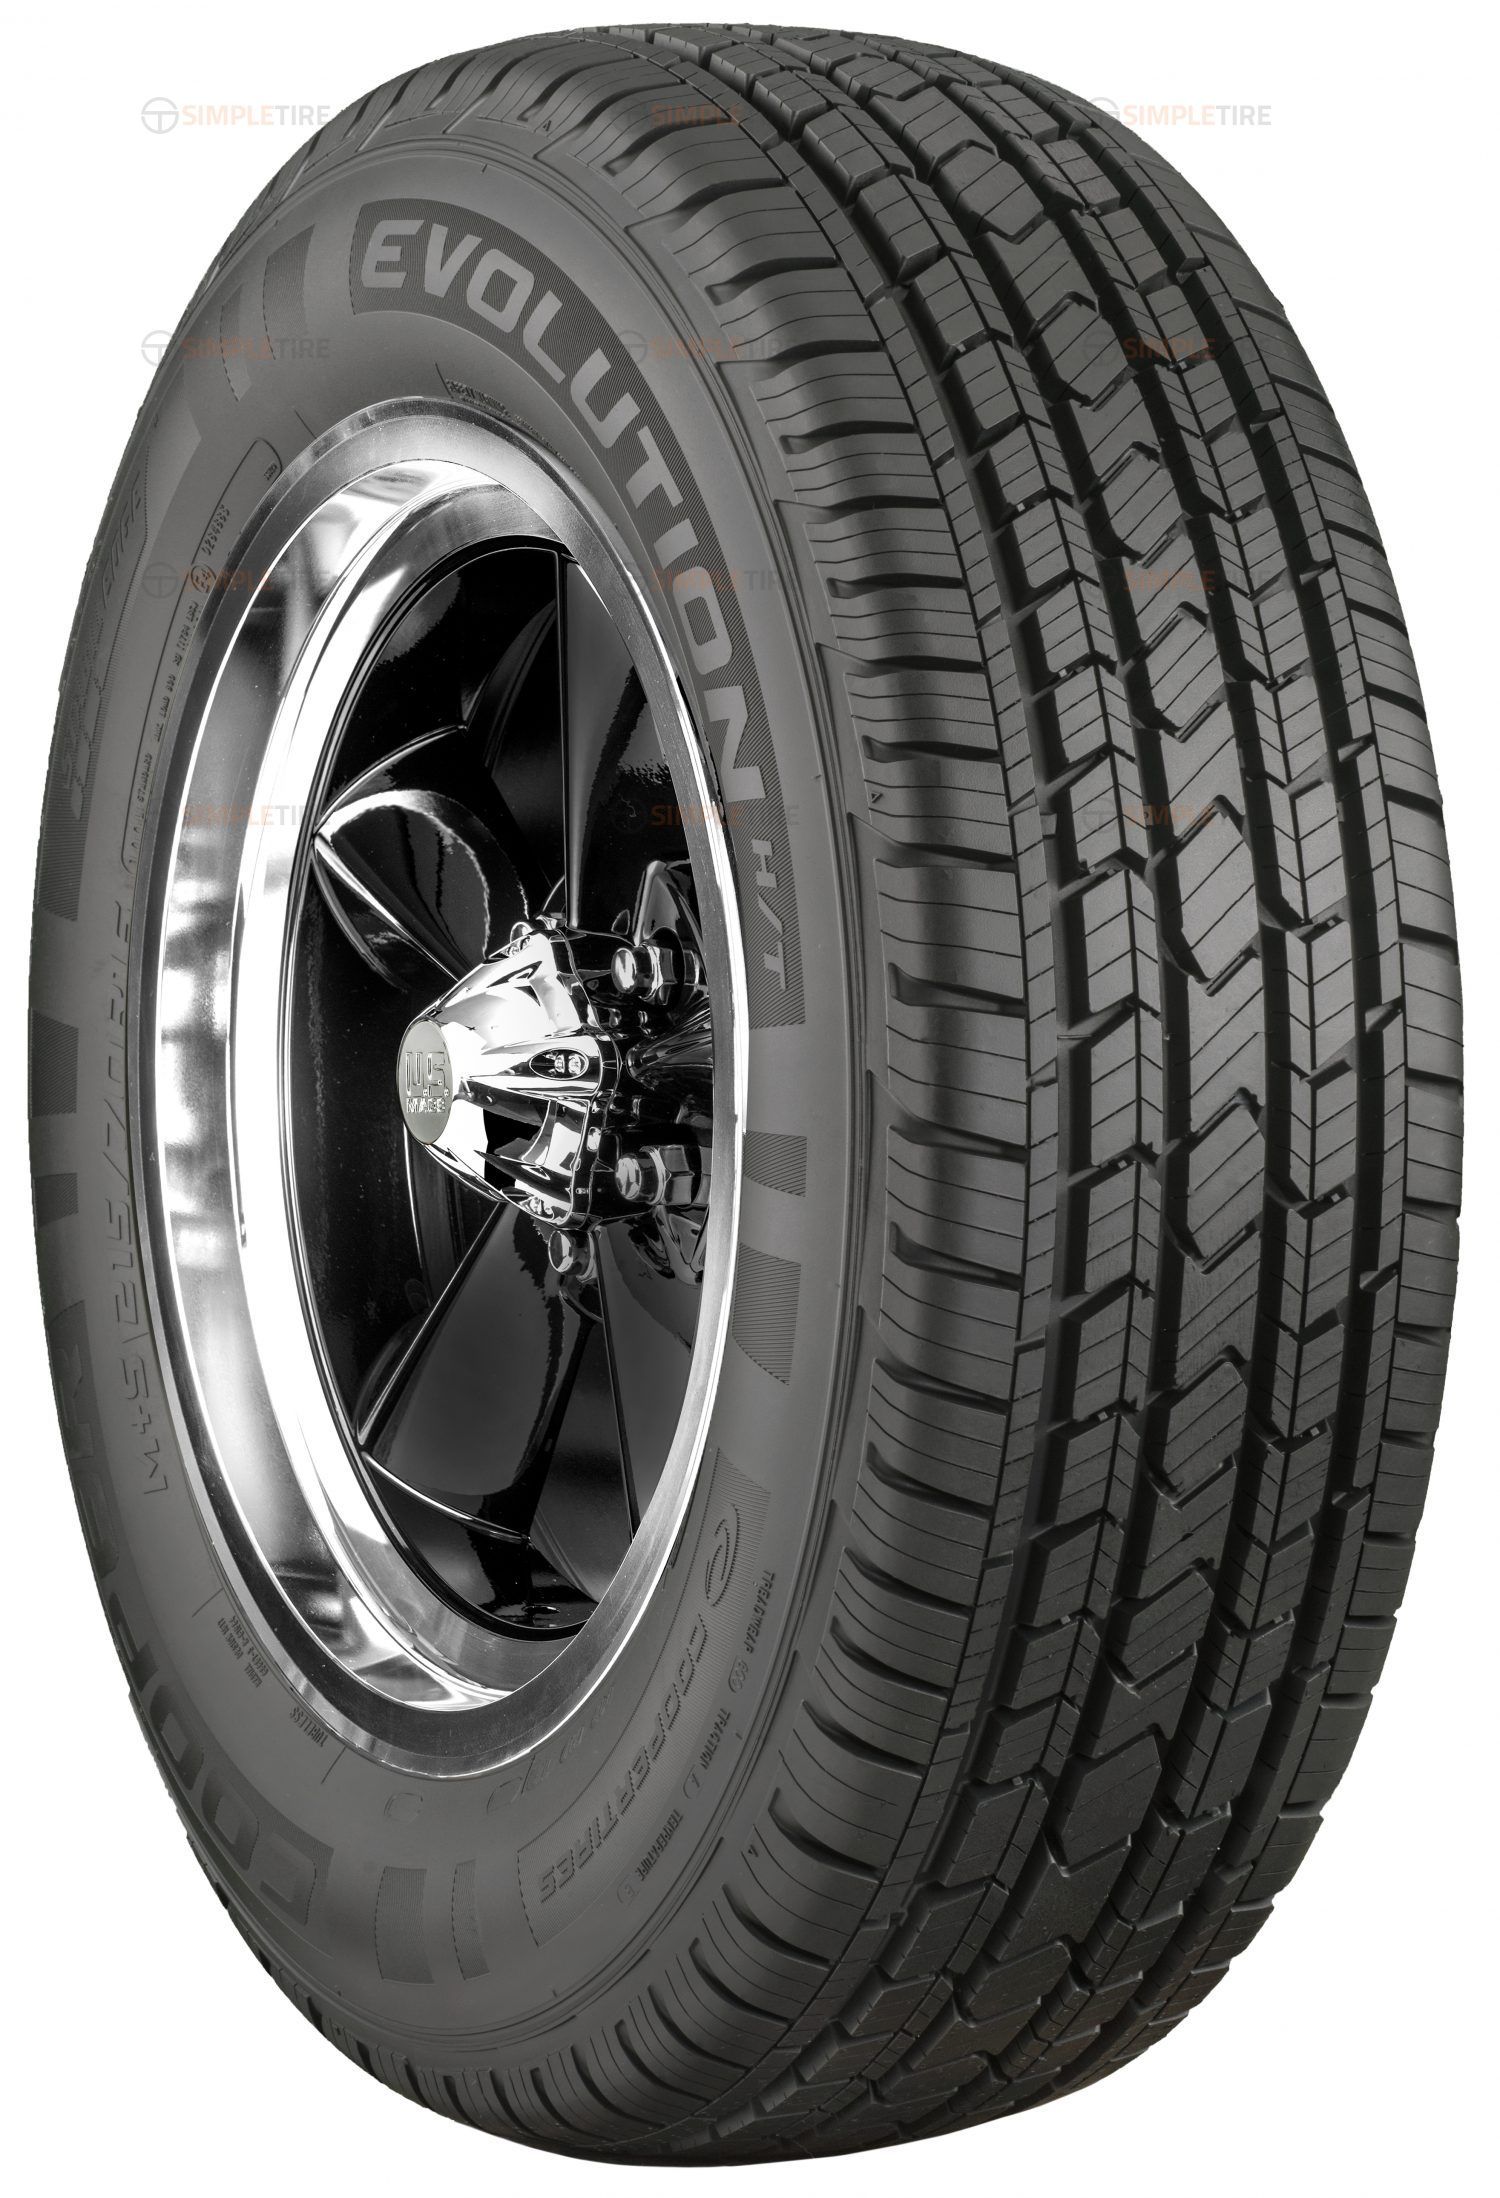 90000029113 275/65R18 Evolution HT Cooper